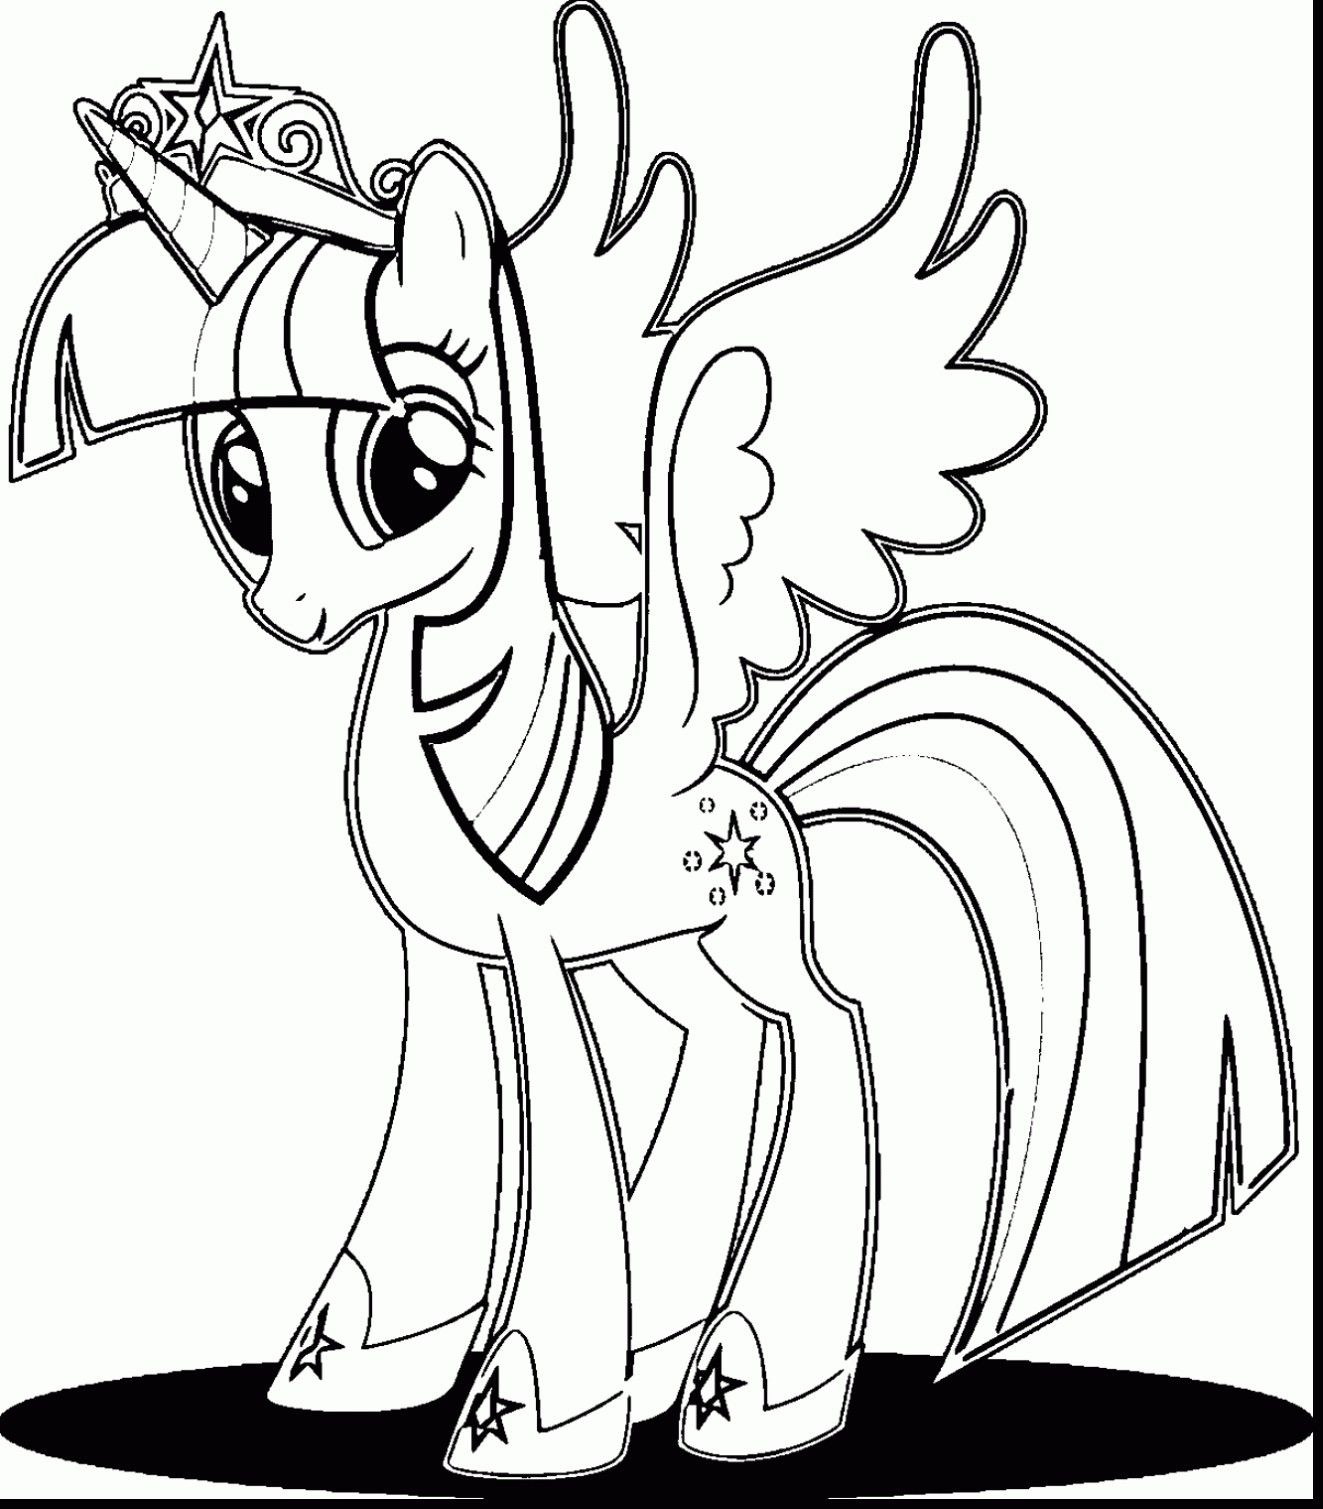 Coloring Pages Of Princess Twilight Sparkle Through The Thousands Of Photographs On Th My Little Pony Coloring Cartoon Coloring Pages My Little Pony Twilight